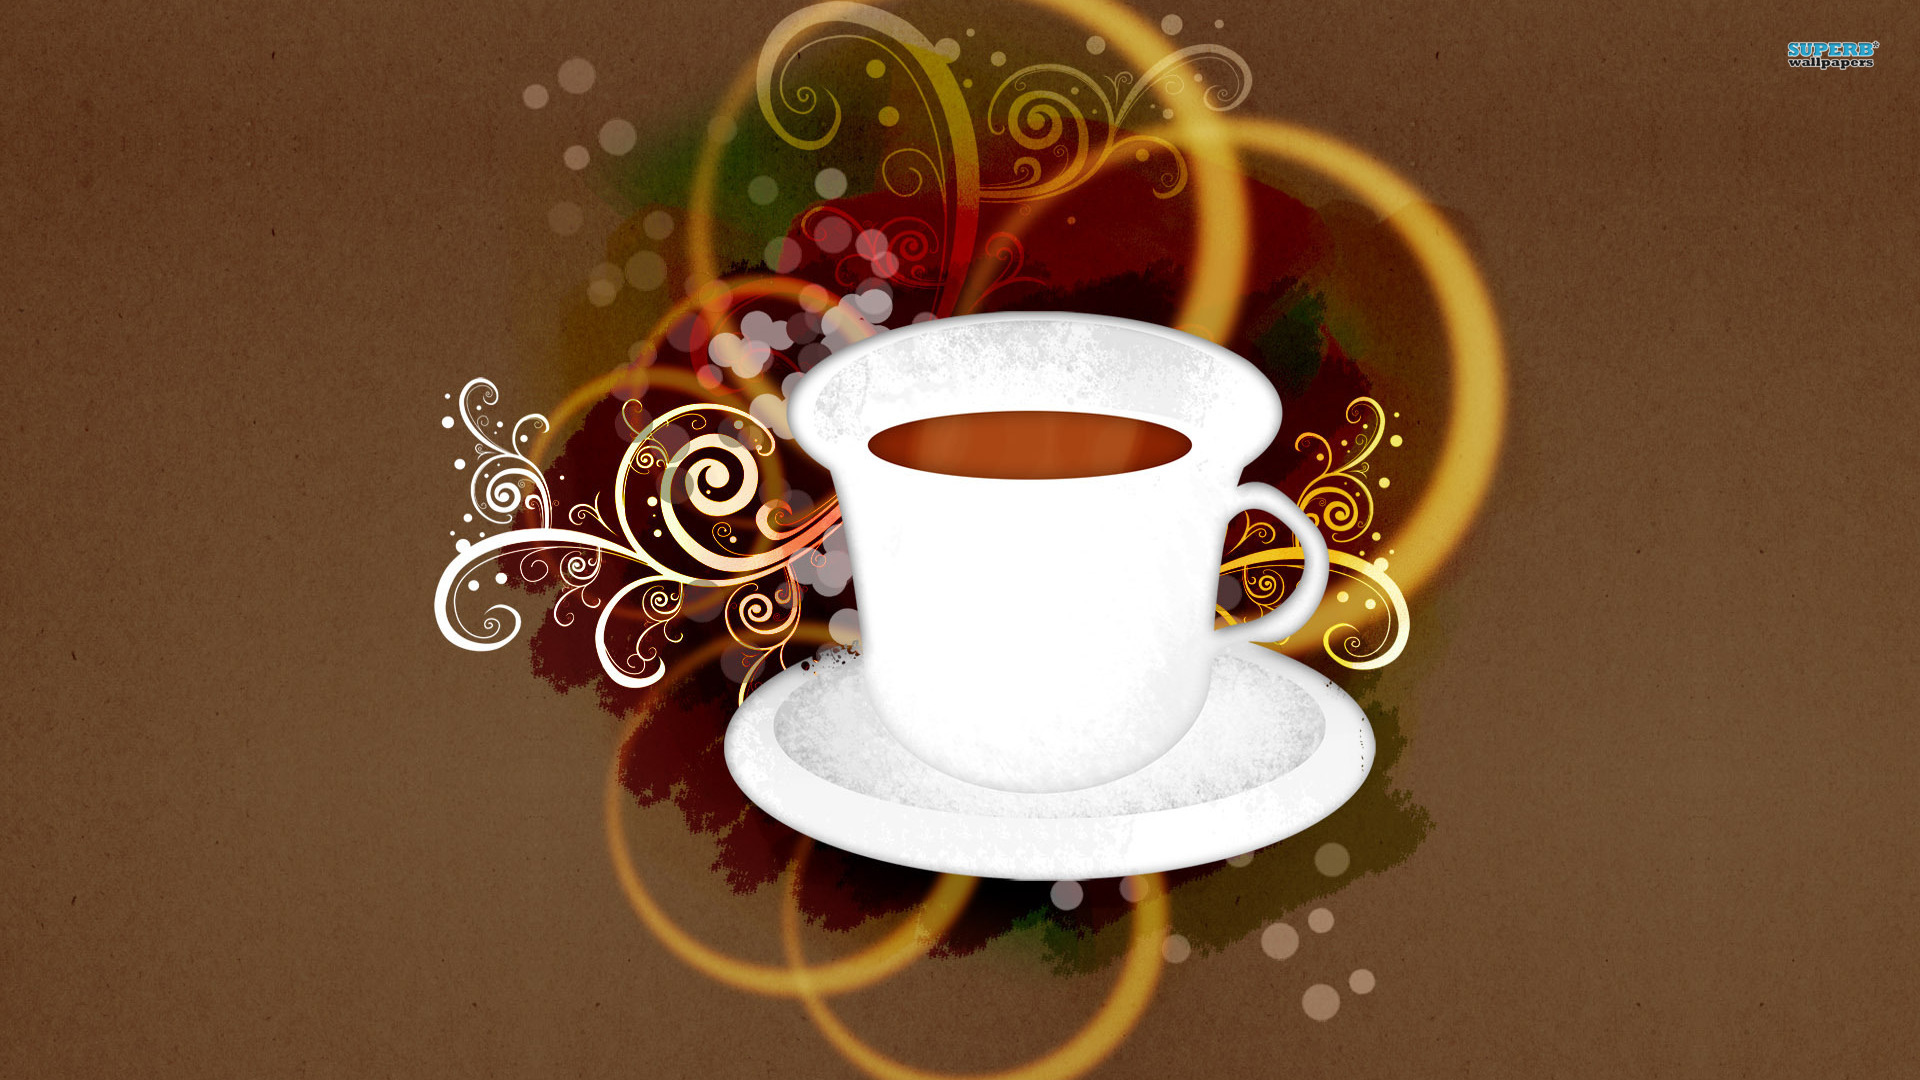 Coffee Wallpaper 1920×1080 Wallpaper